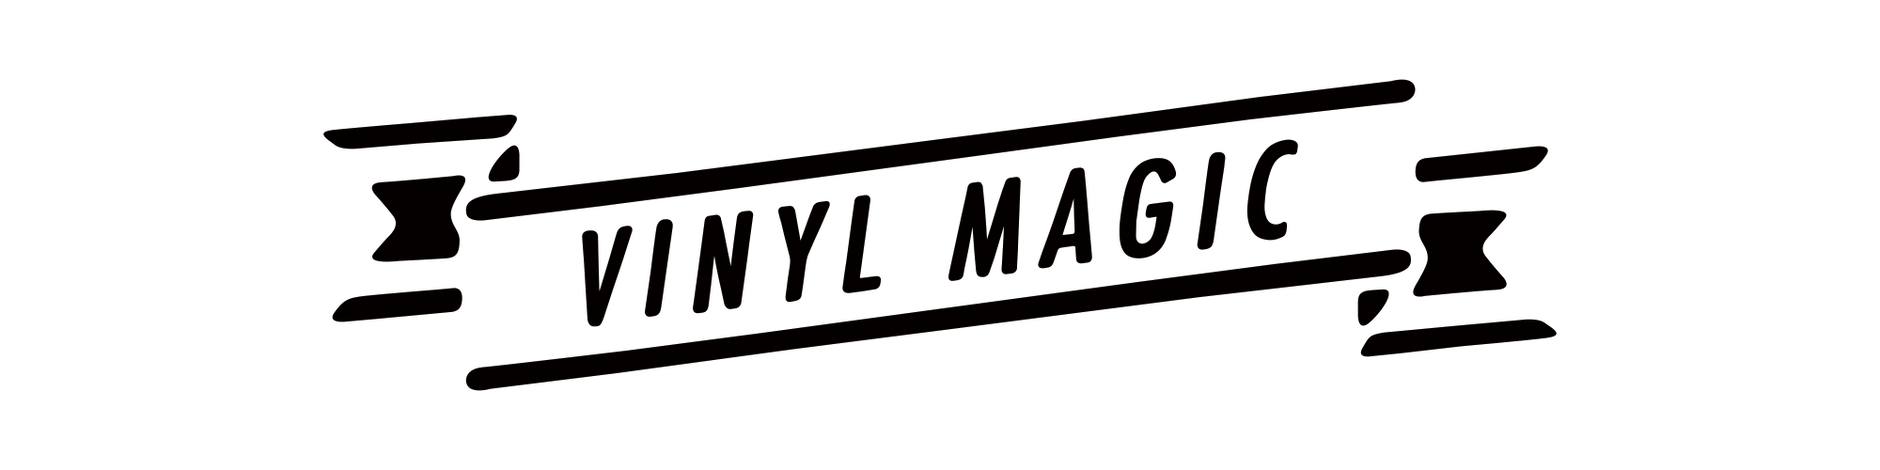 VINYL MAGIC ONLINE STORE